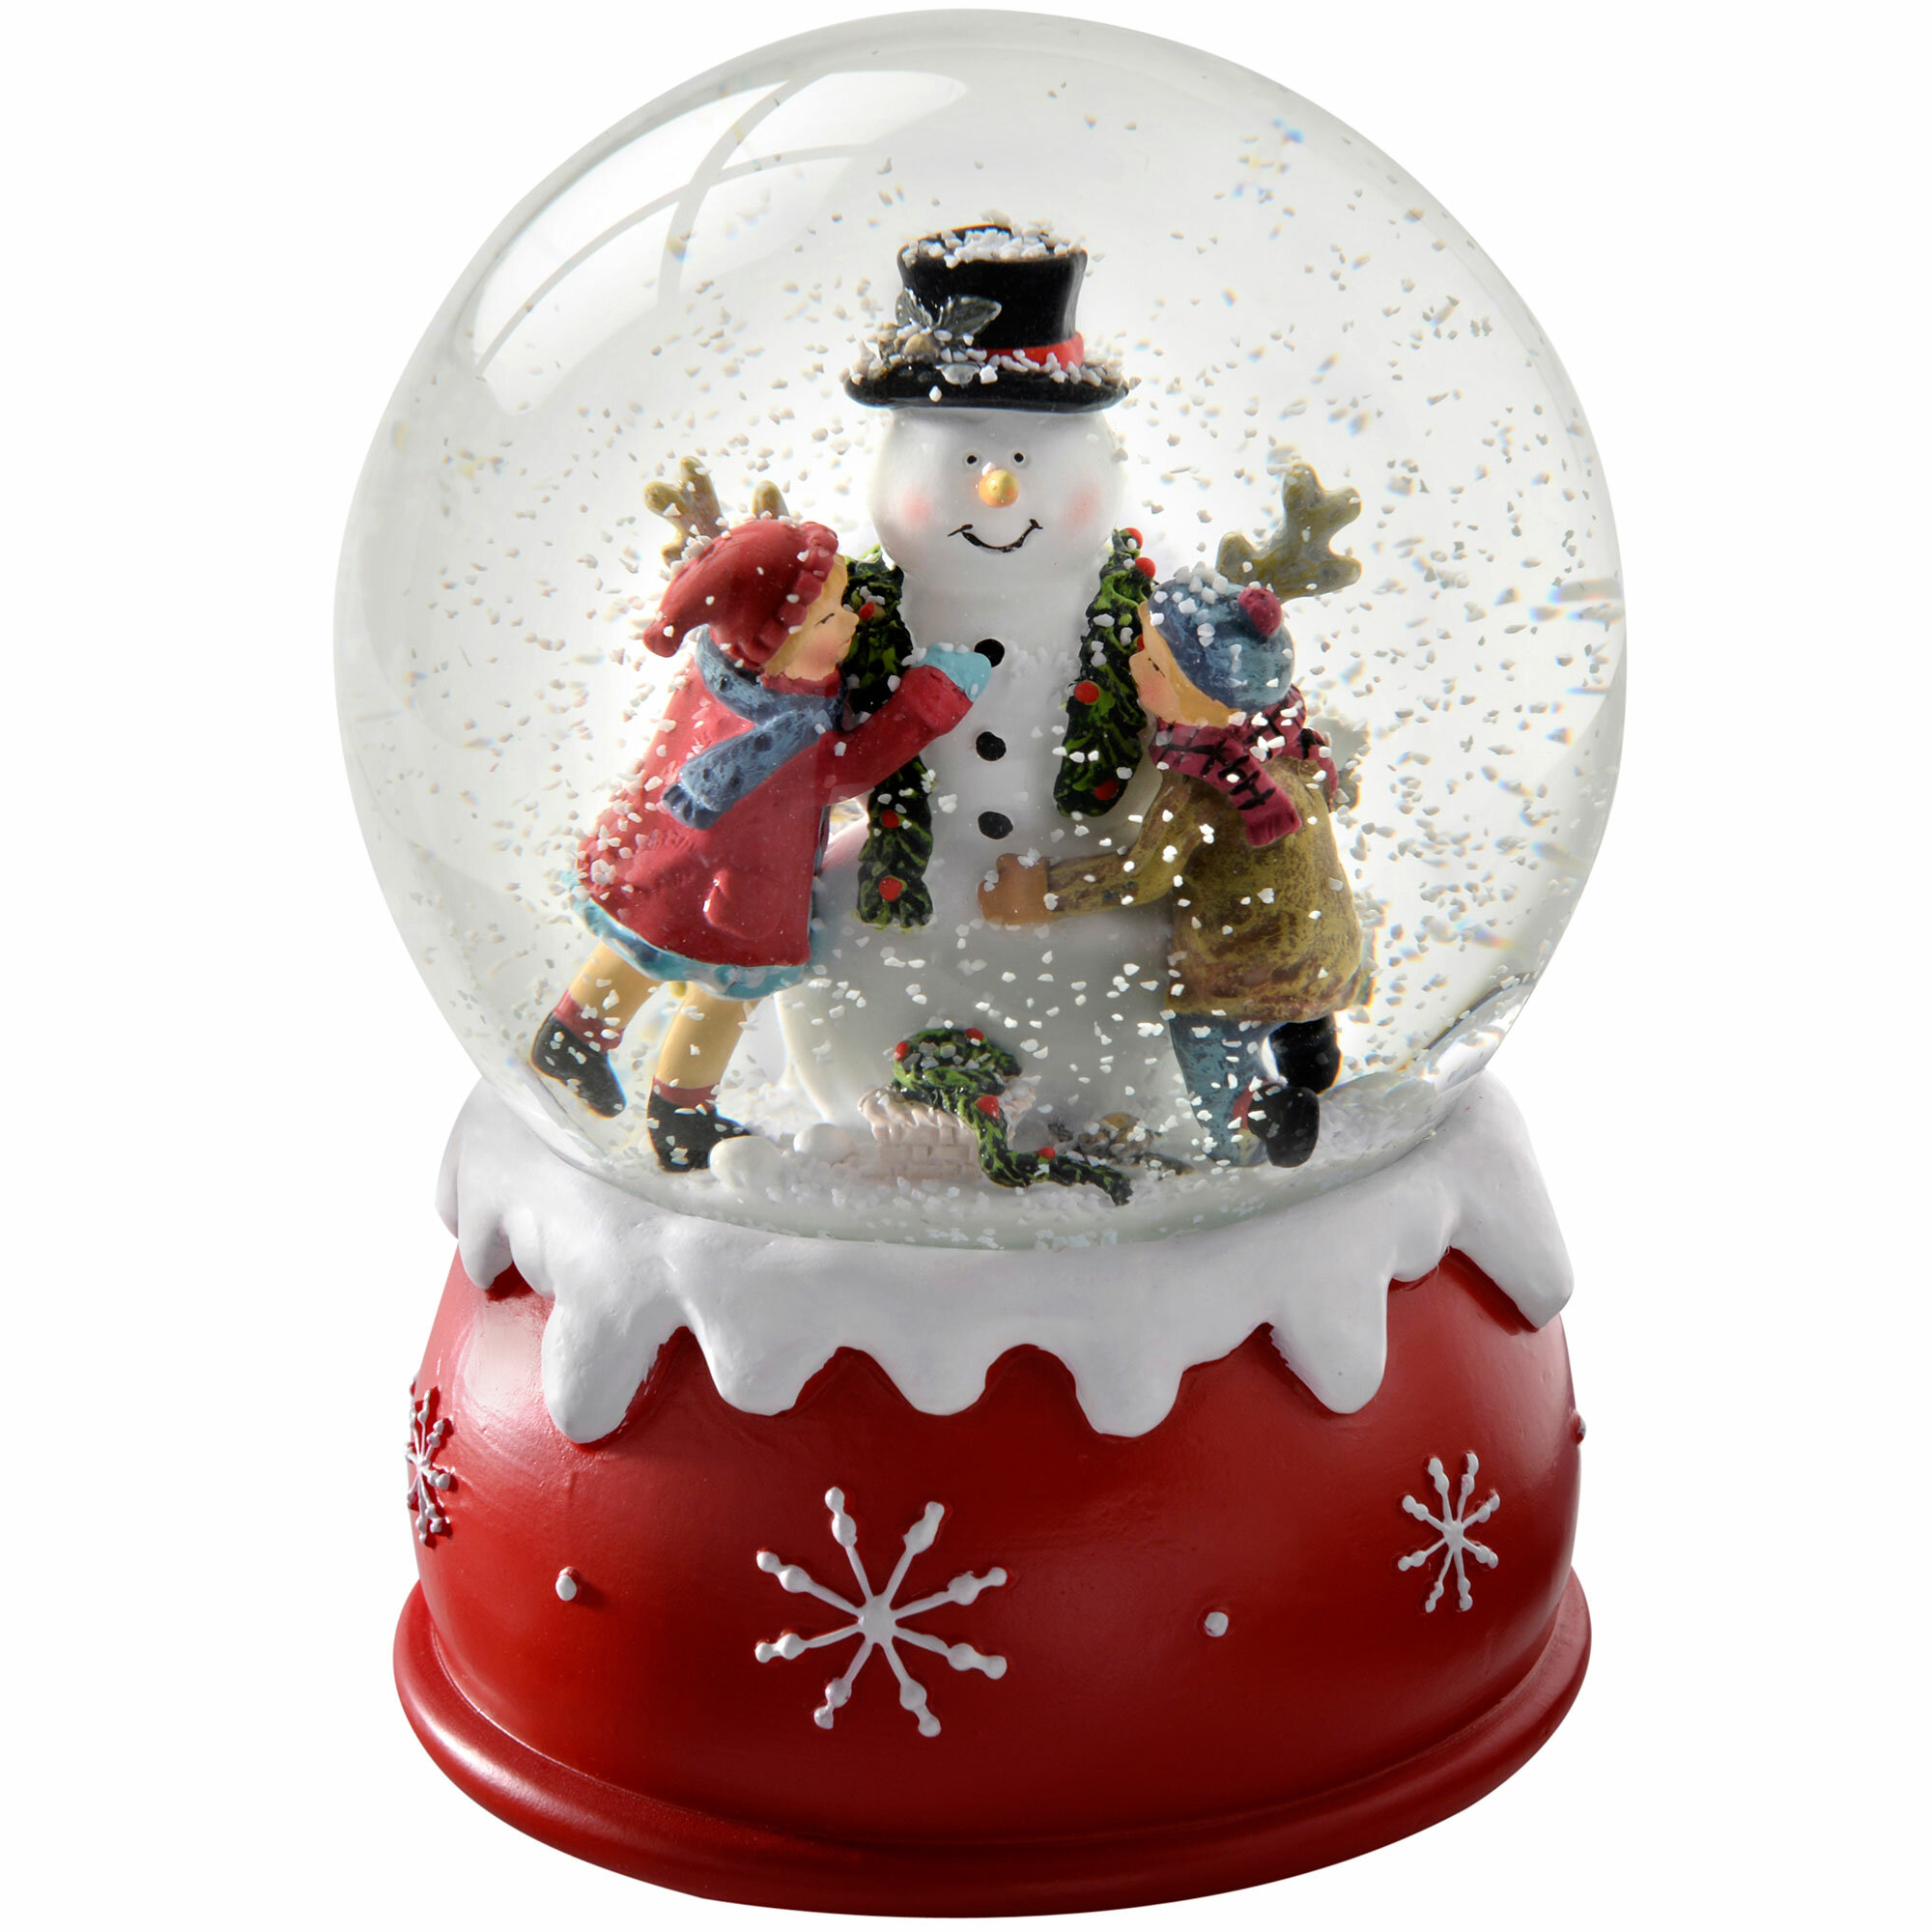 A Christmas Snow.Children And Snowman Christmas Snow Globe